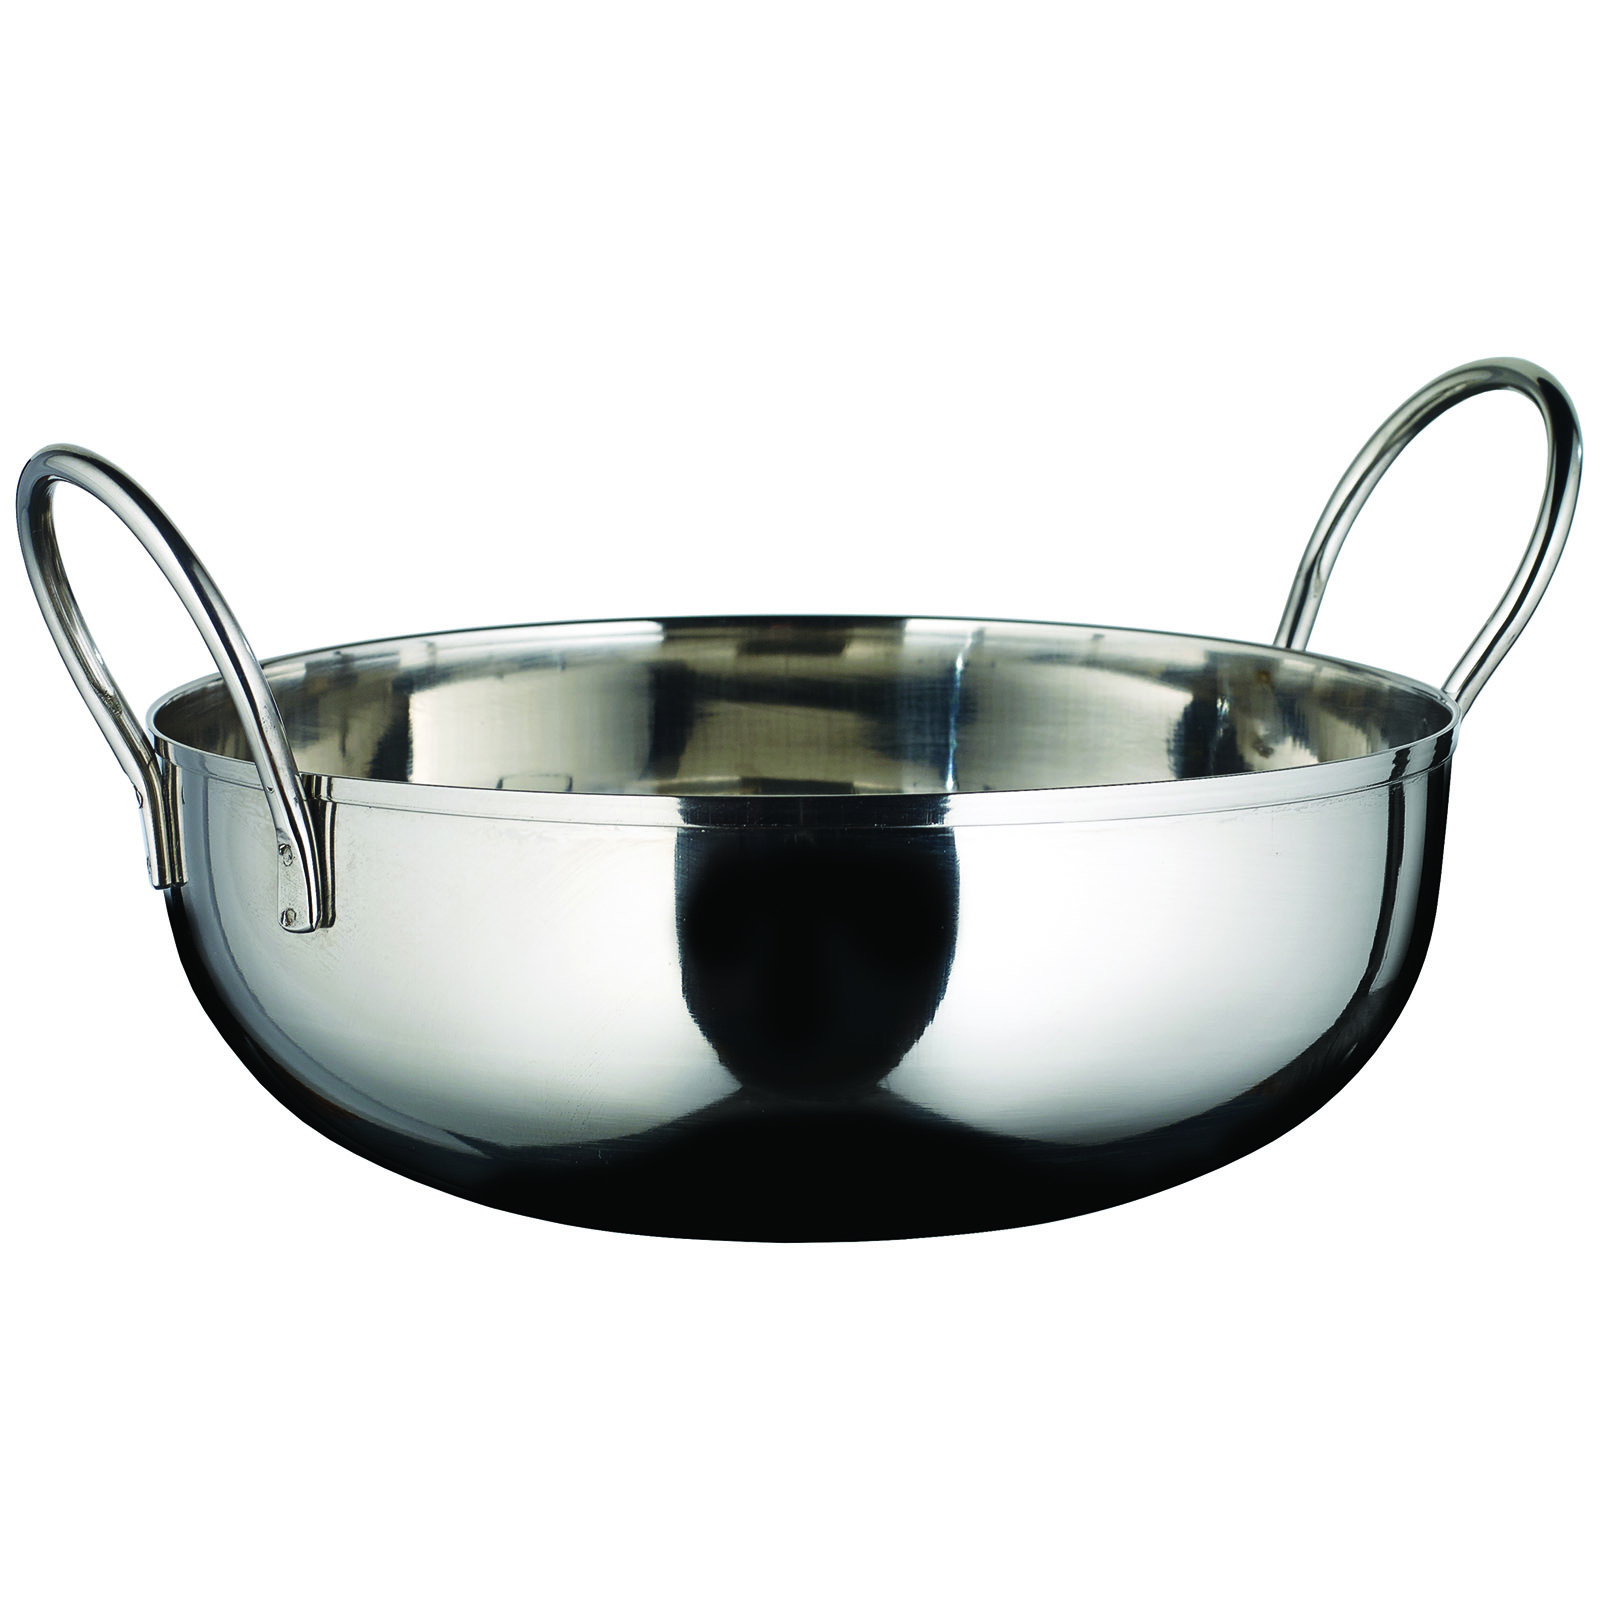 Winco KDB-7 bowl, metal,  1 - 2 qt (32 - 95 oz)